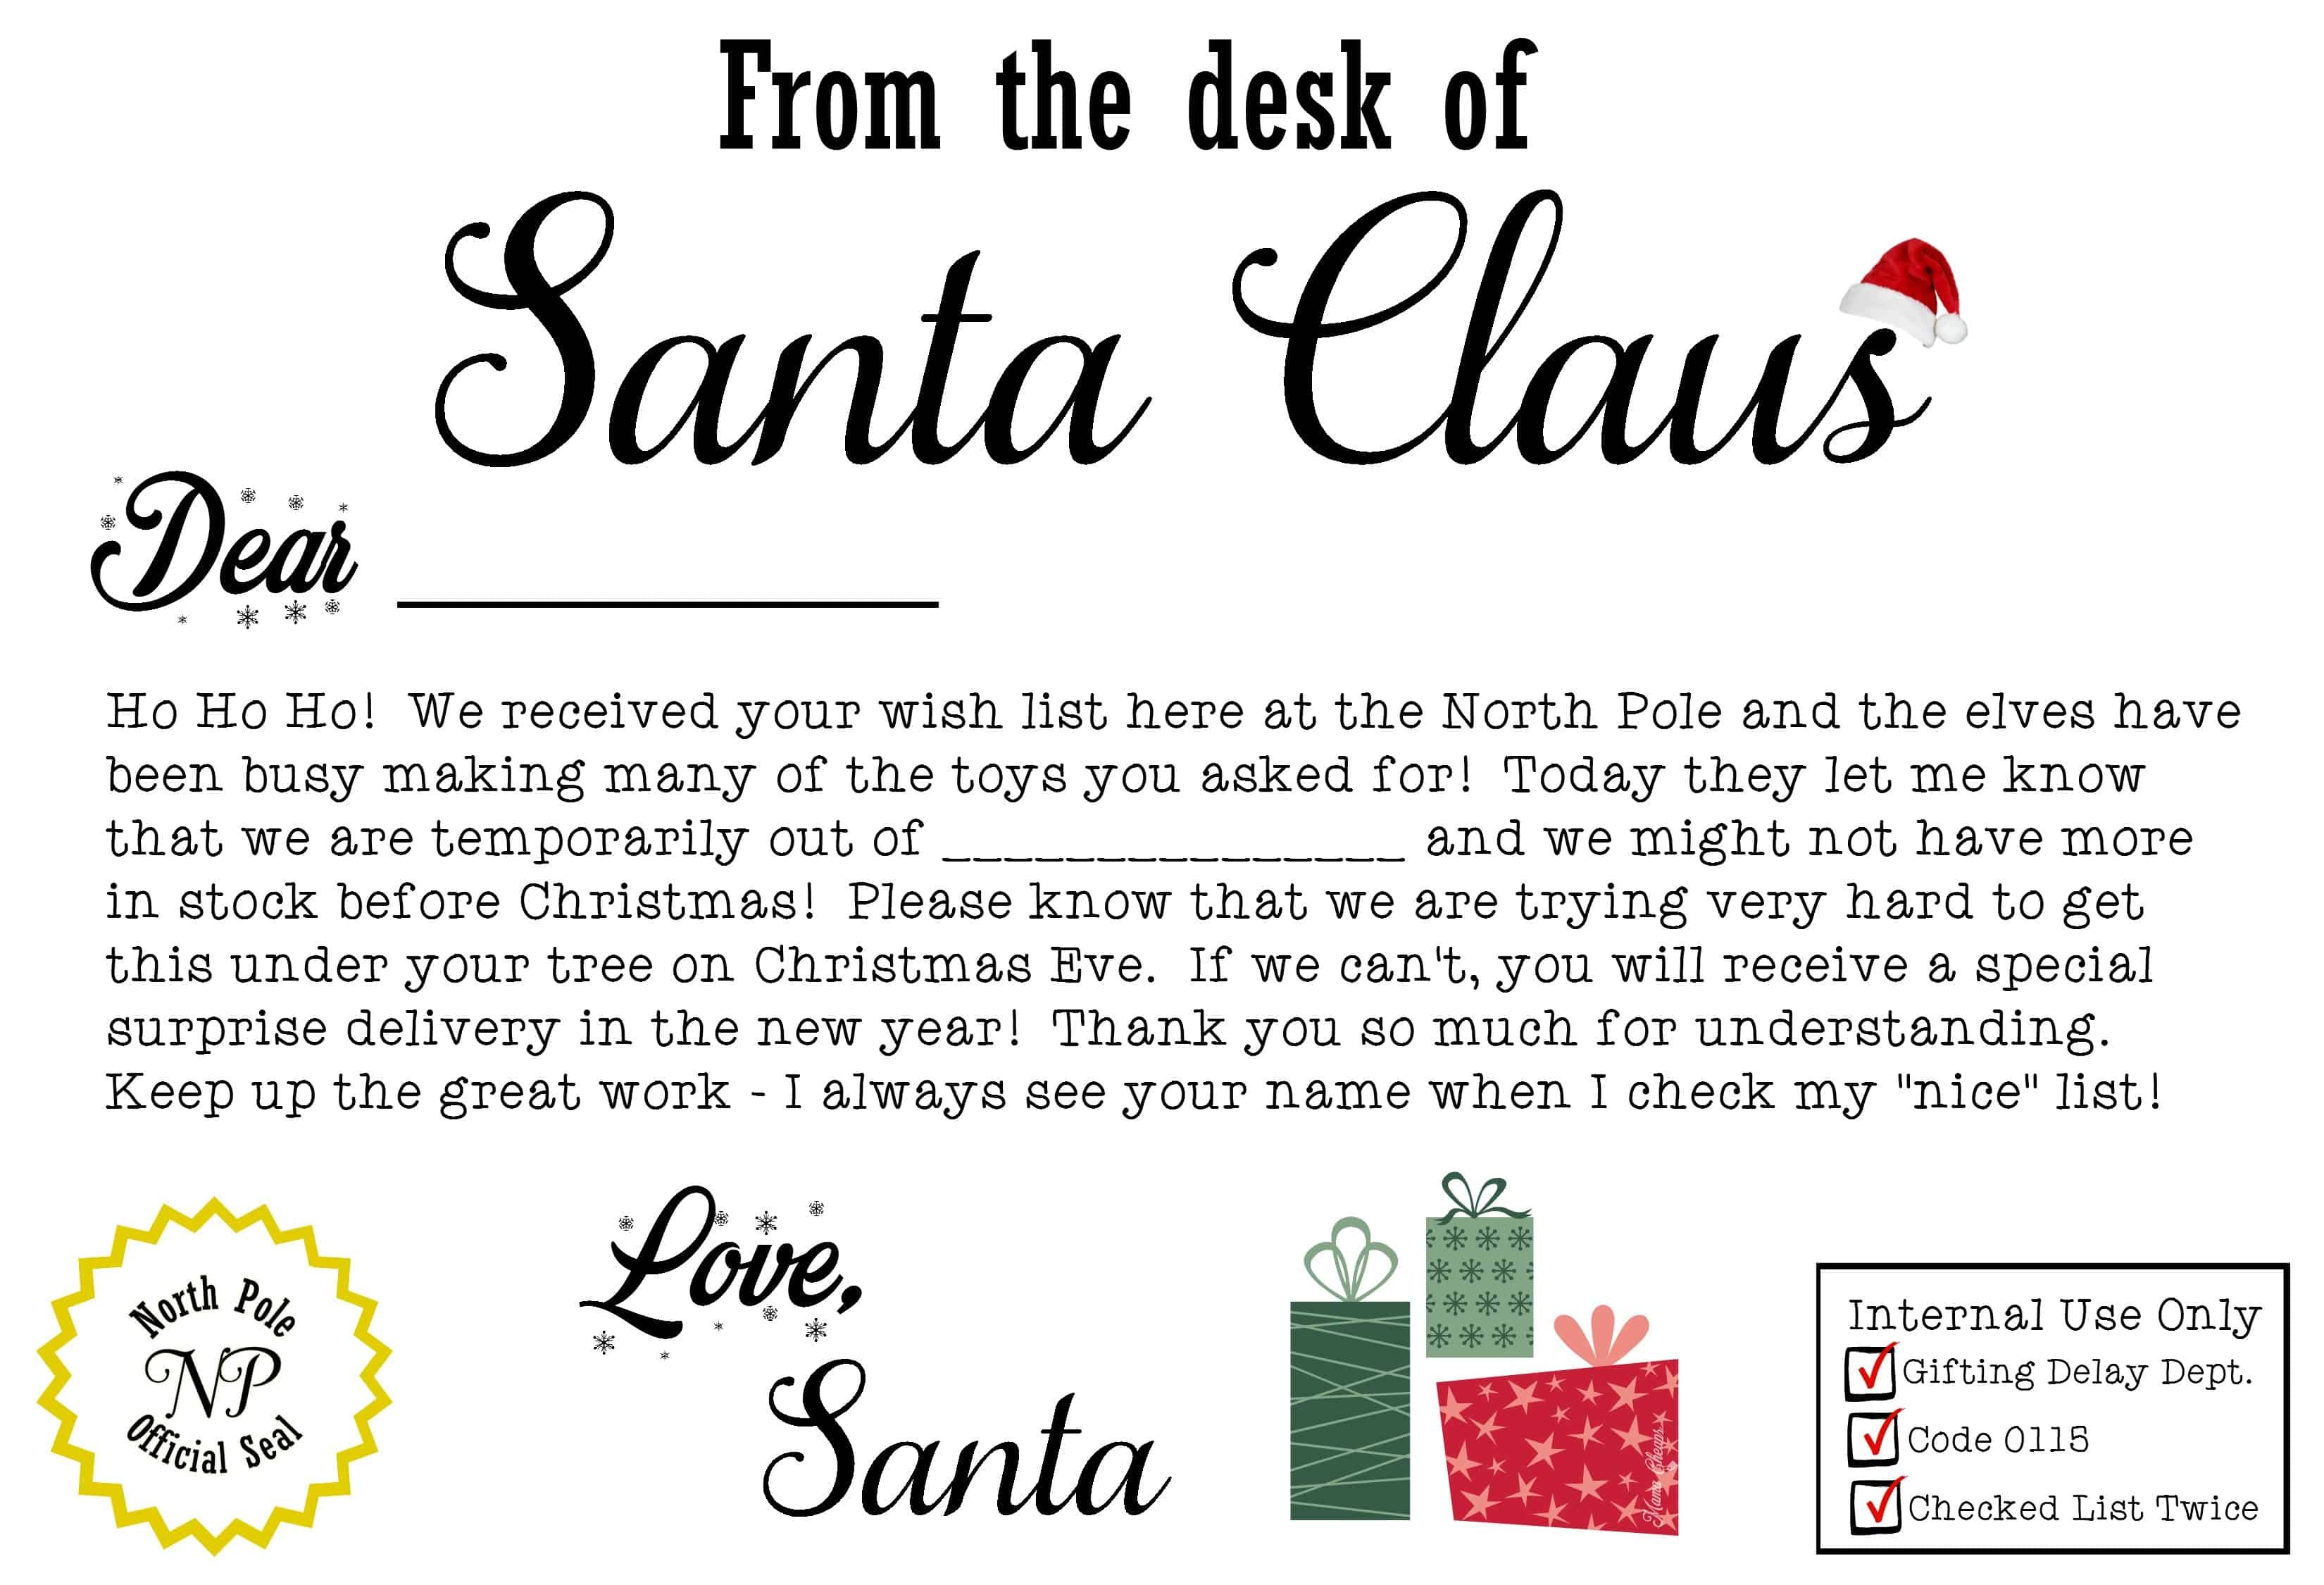 Free santa claus christmas present iou printable letter mama cheaps printable santa iou letter and deliver it before christmas spiritdancerdesigns Images